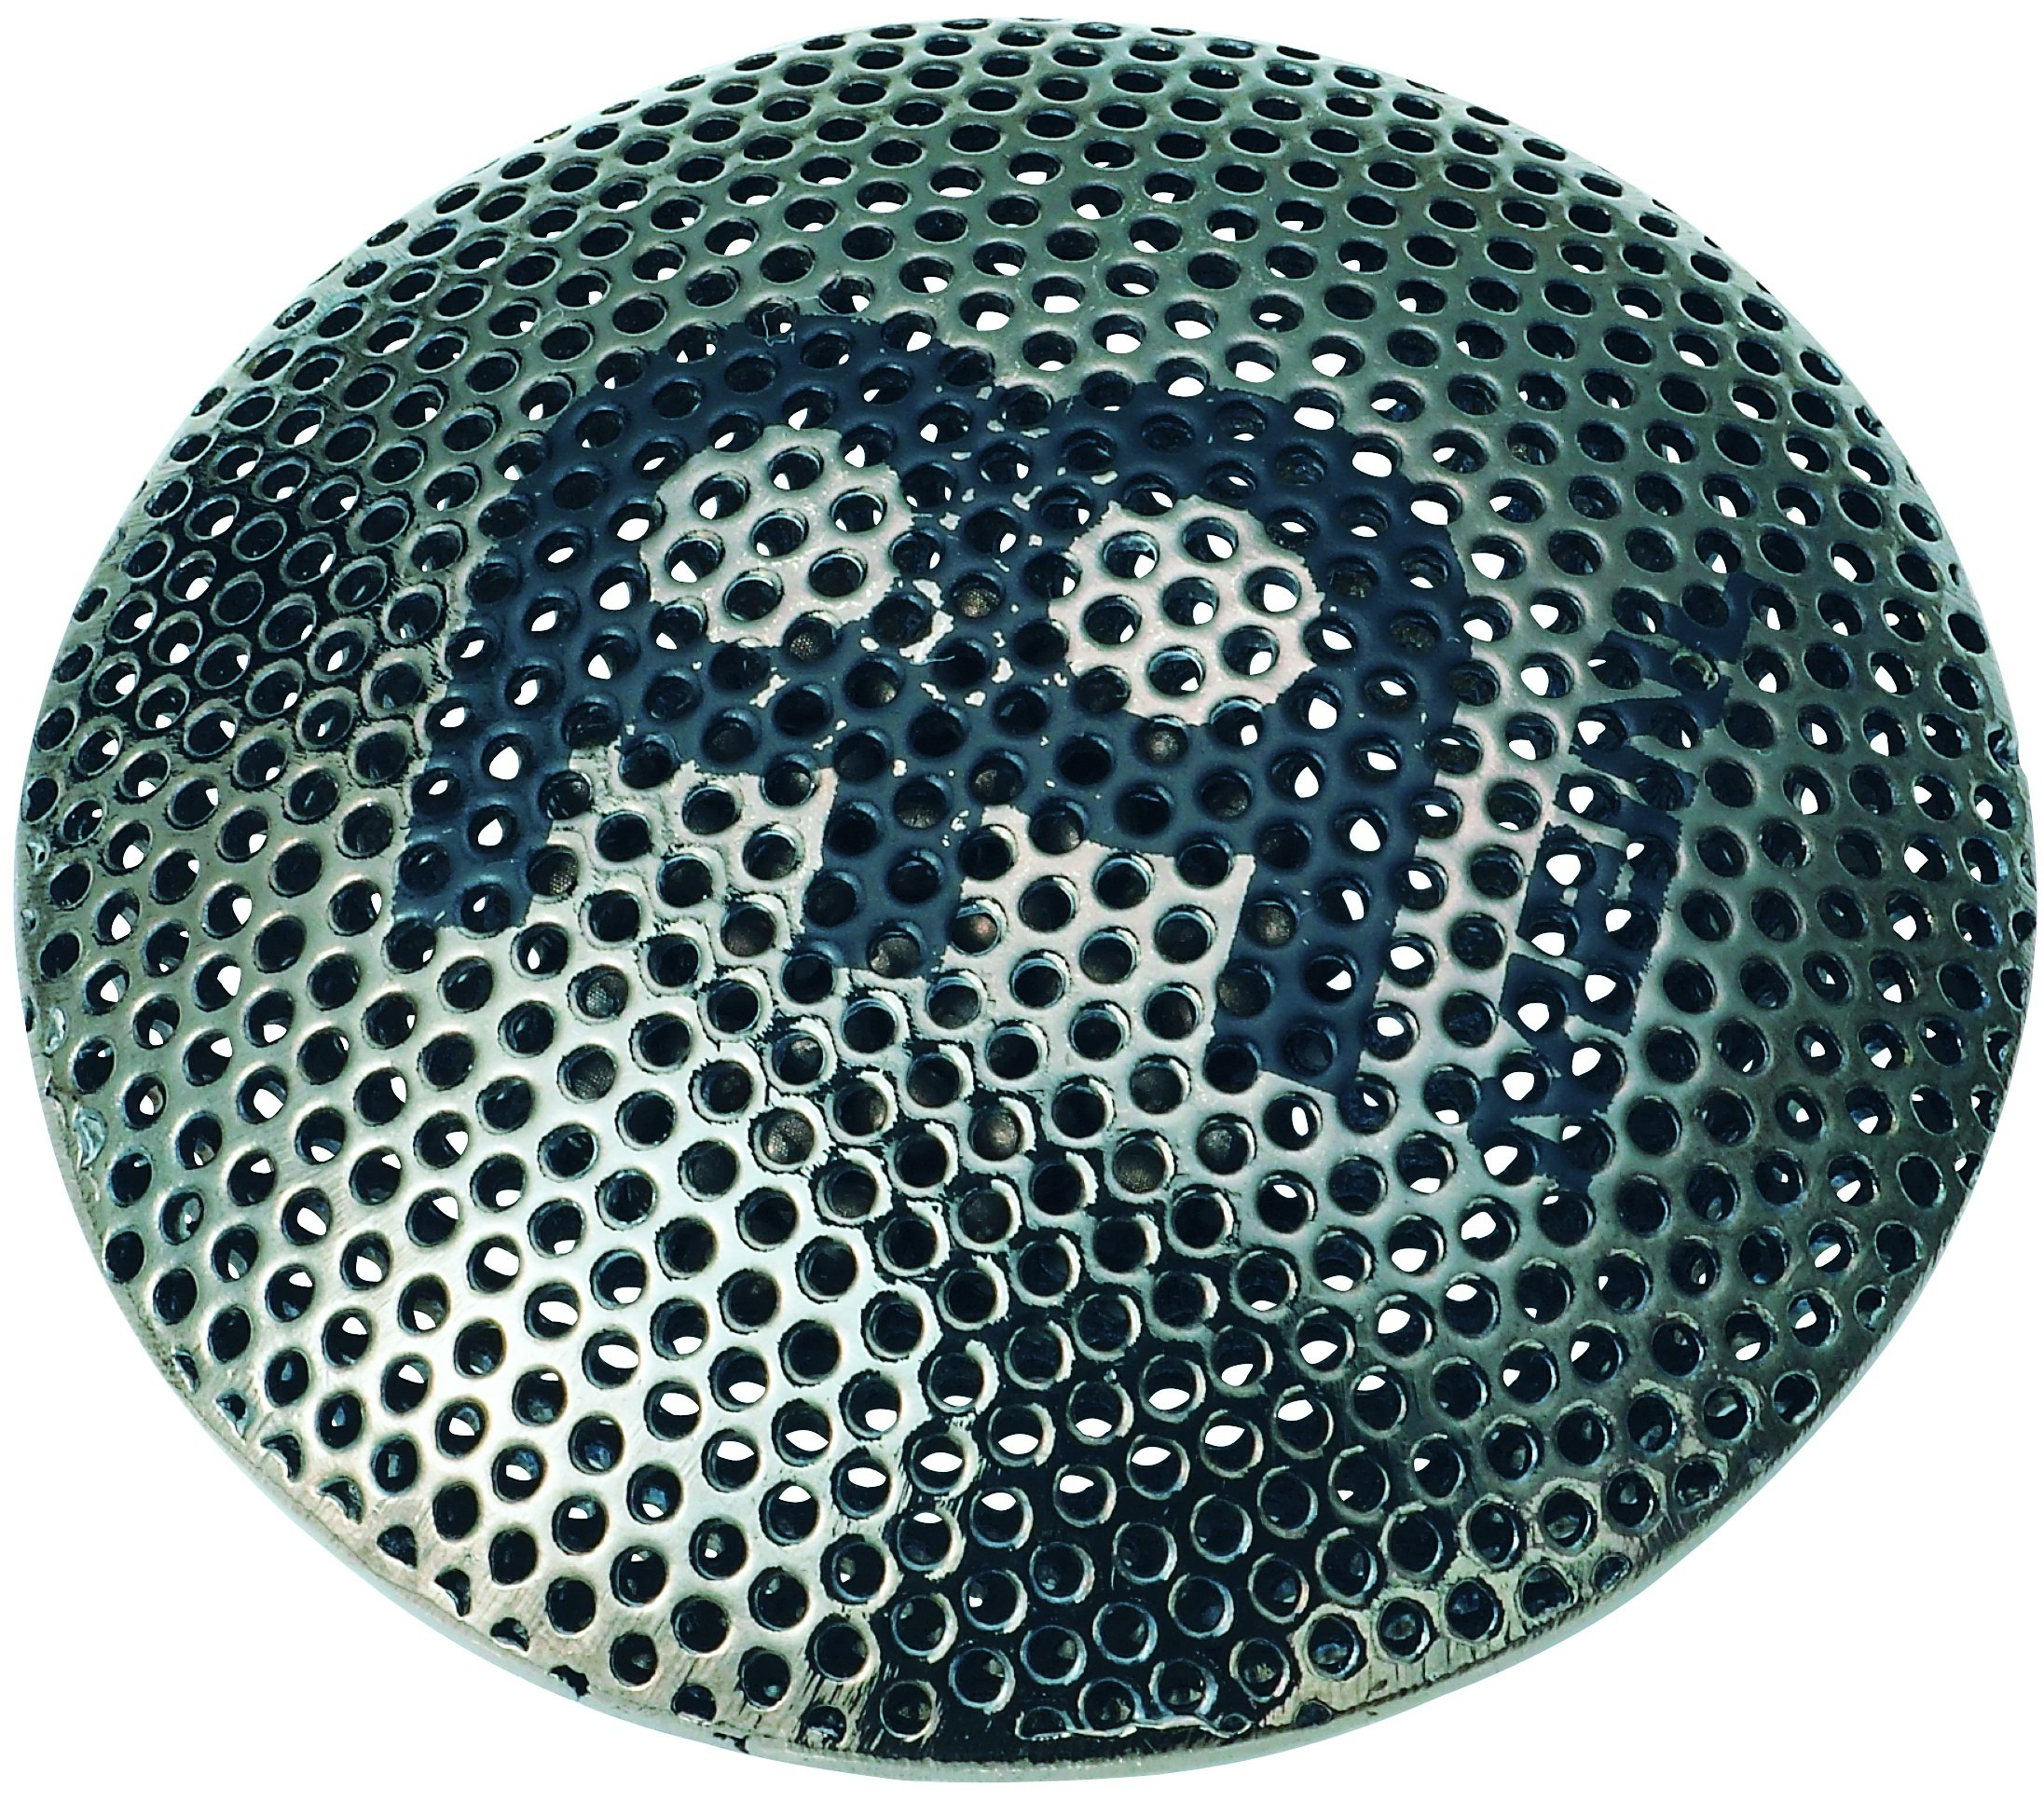 Meinl Percussion SH16 Medium Coated Steel Spark Shaker by Meinl Percussion